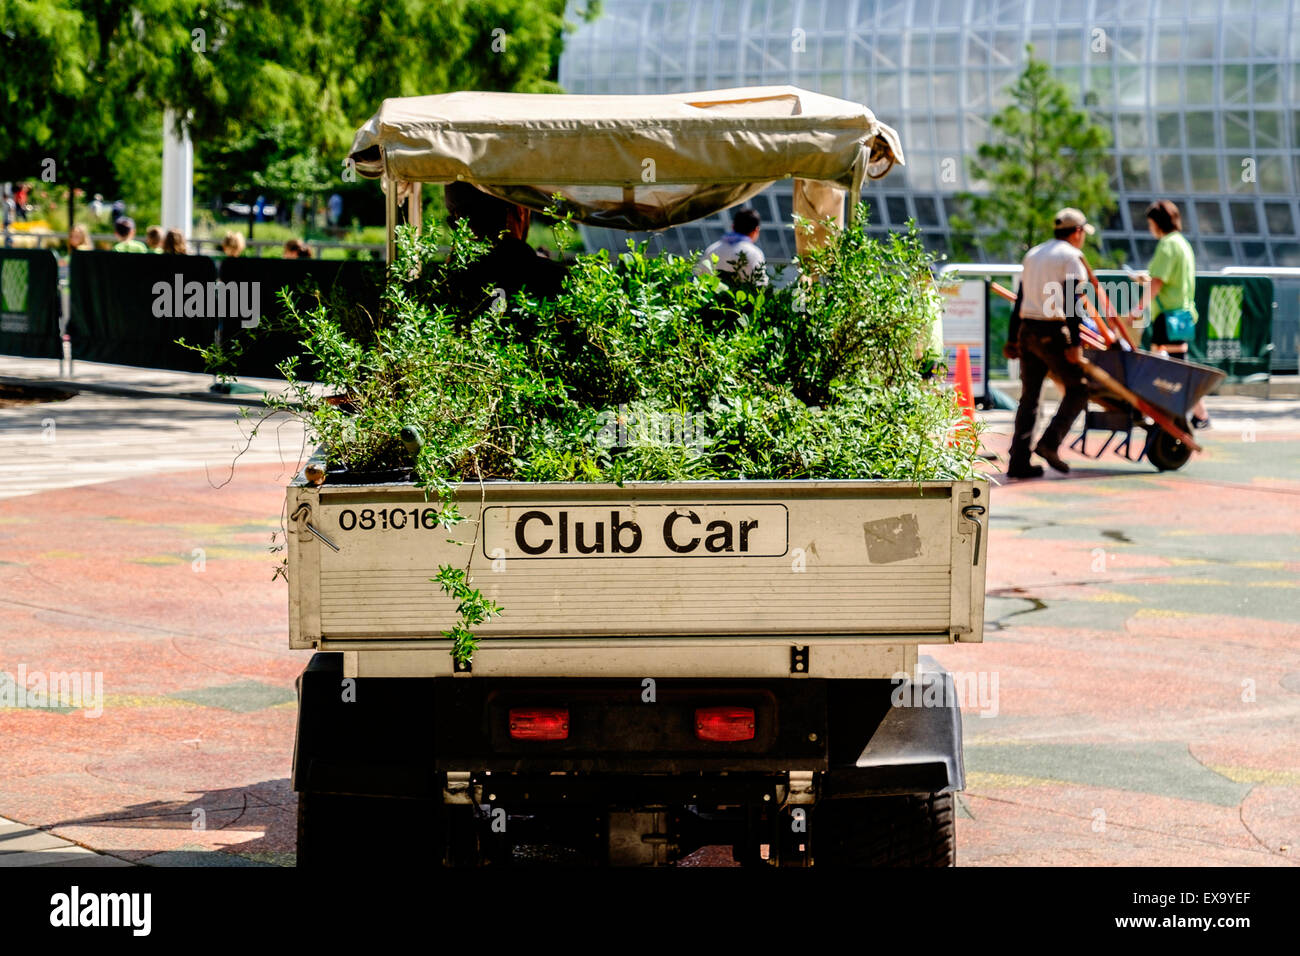 A small truck called a Club Car filled with shrubbery for planting in the Myriad Botanical Gardens in Oklahoma City, - Stock Image